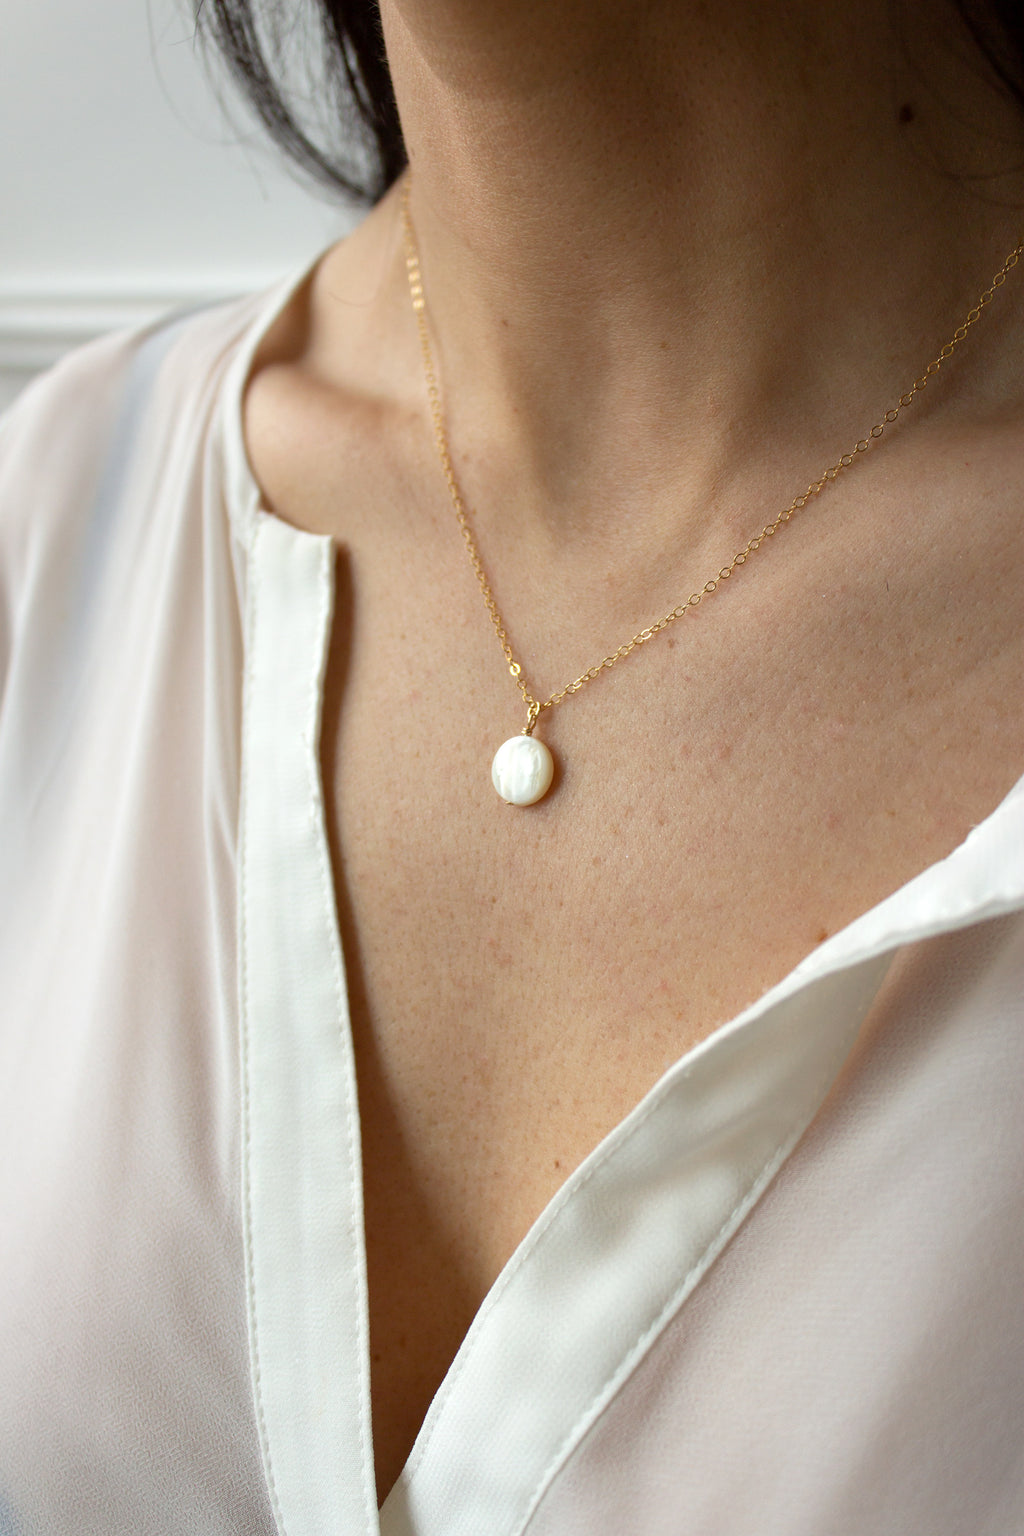 Petite Mother of Pearl Coin Necklace - Christine Elizabeth Jewelry